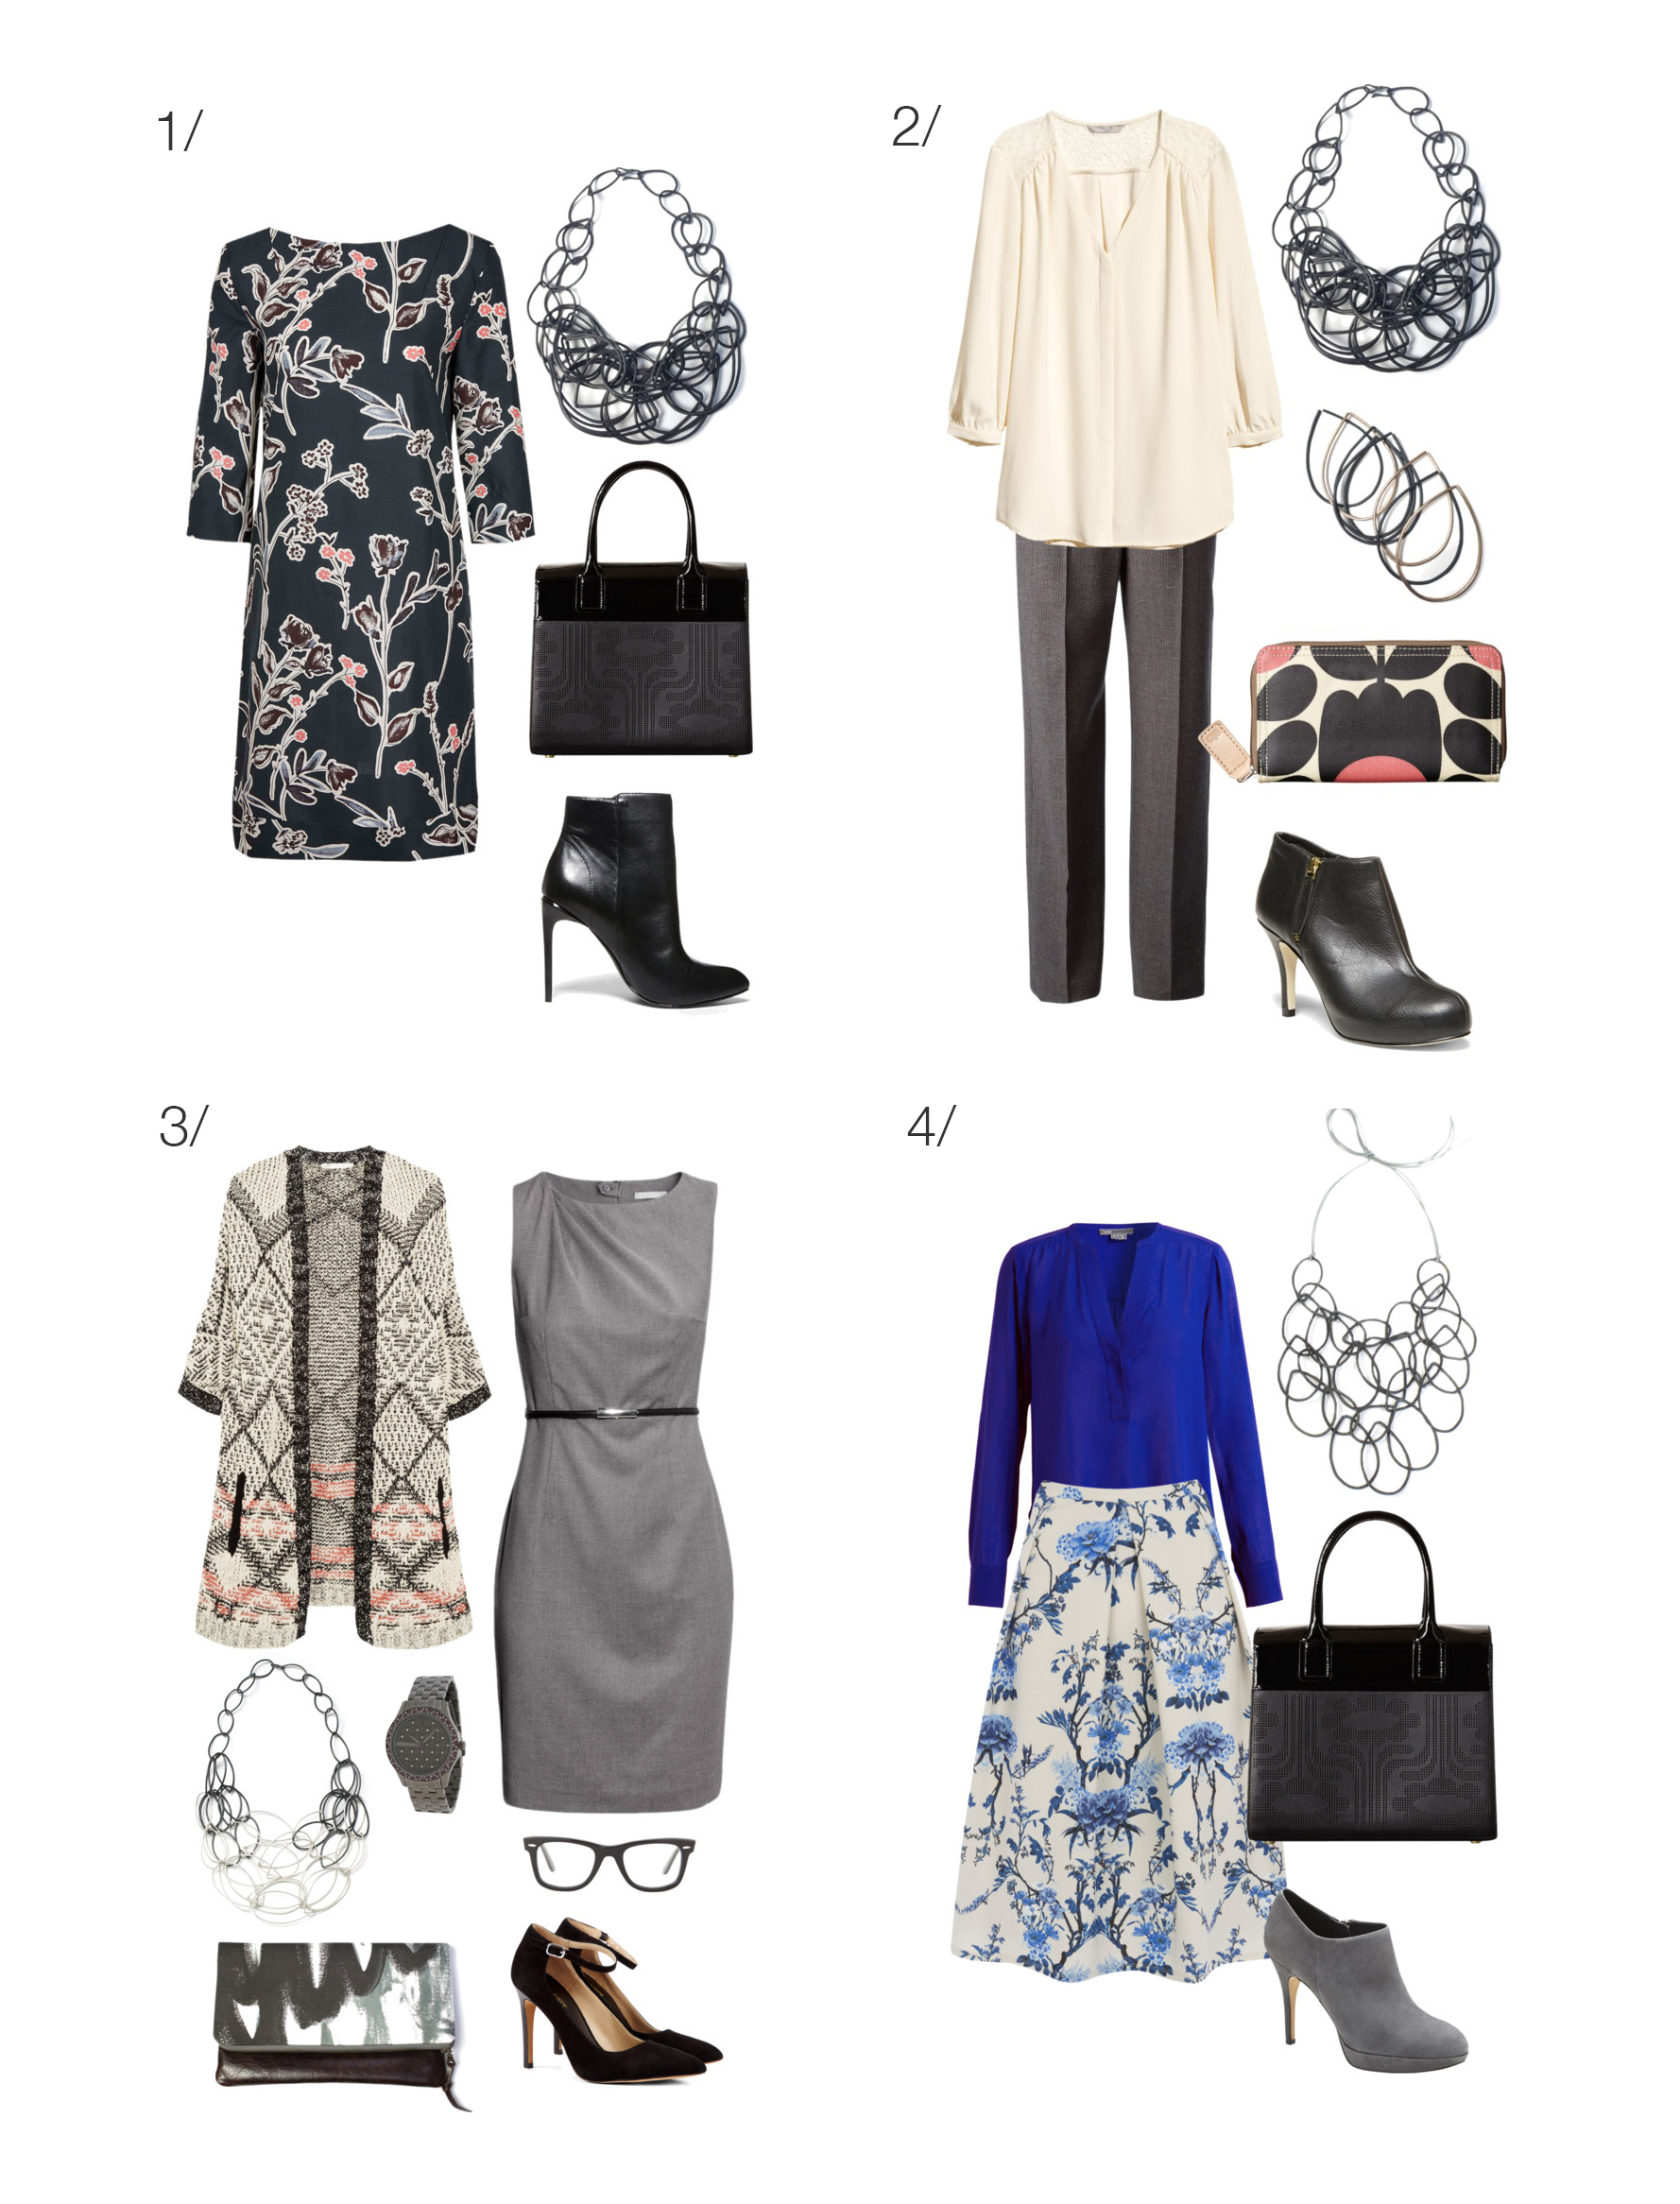 8 outfit ideas for wearing a statement necklace to work ...